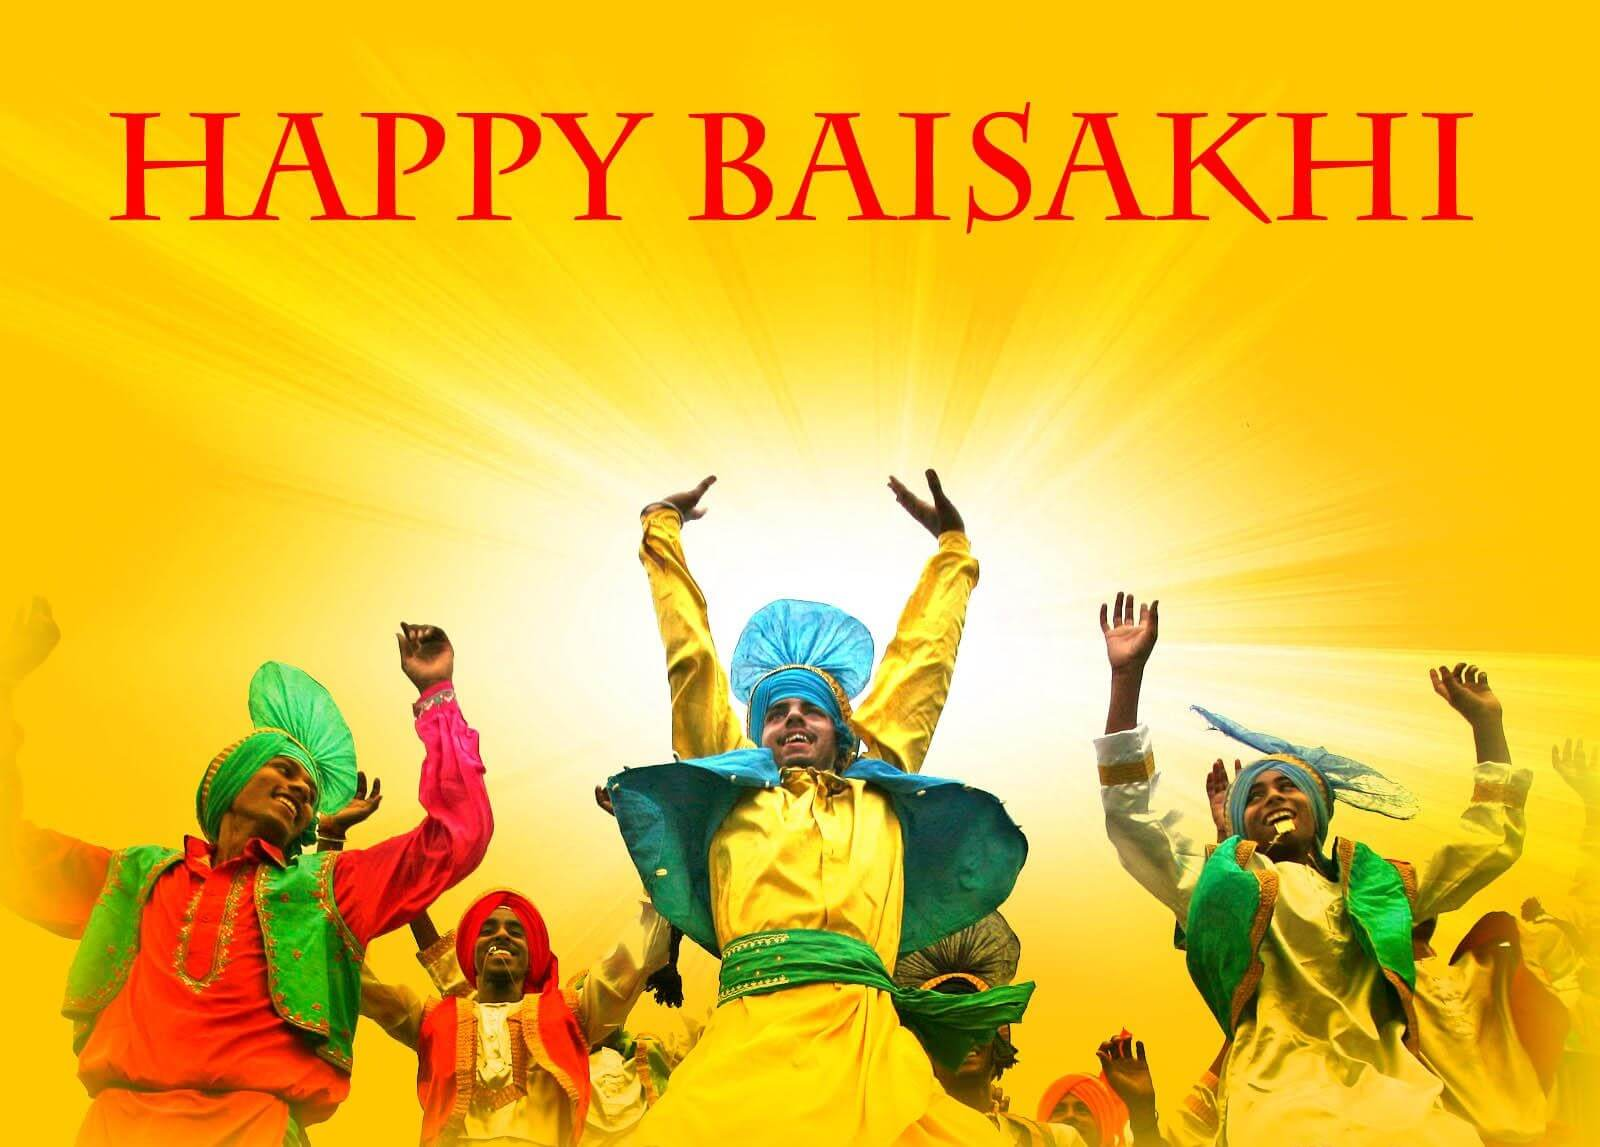 happy baisakhi 2017 wallpaper hd